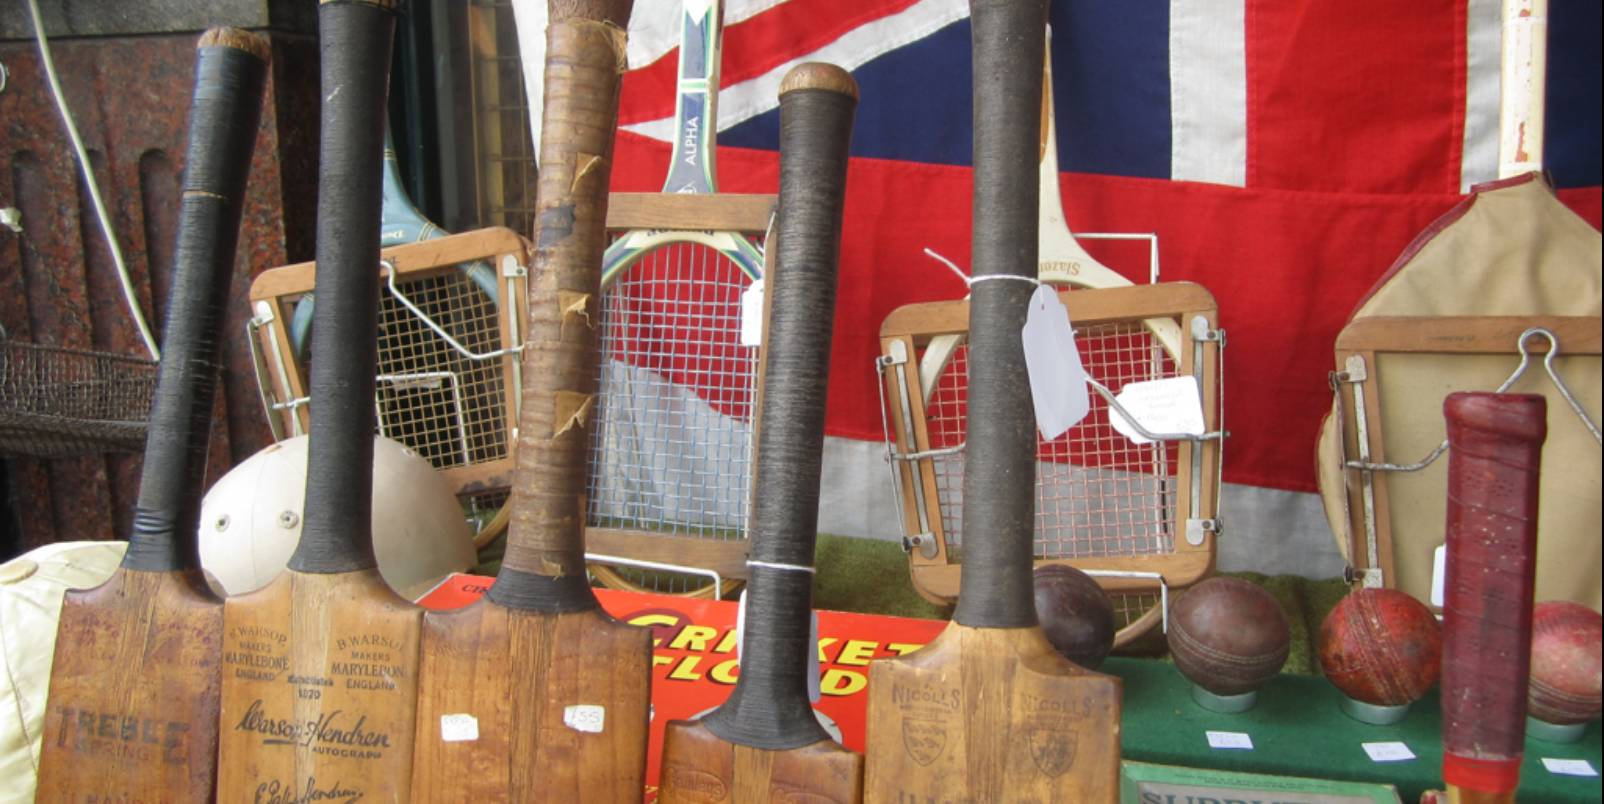 Vintage sports on Portobello Road